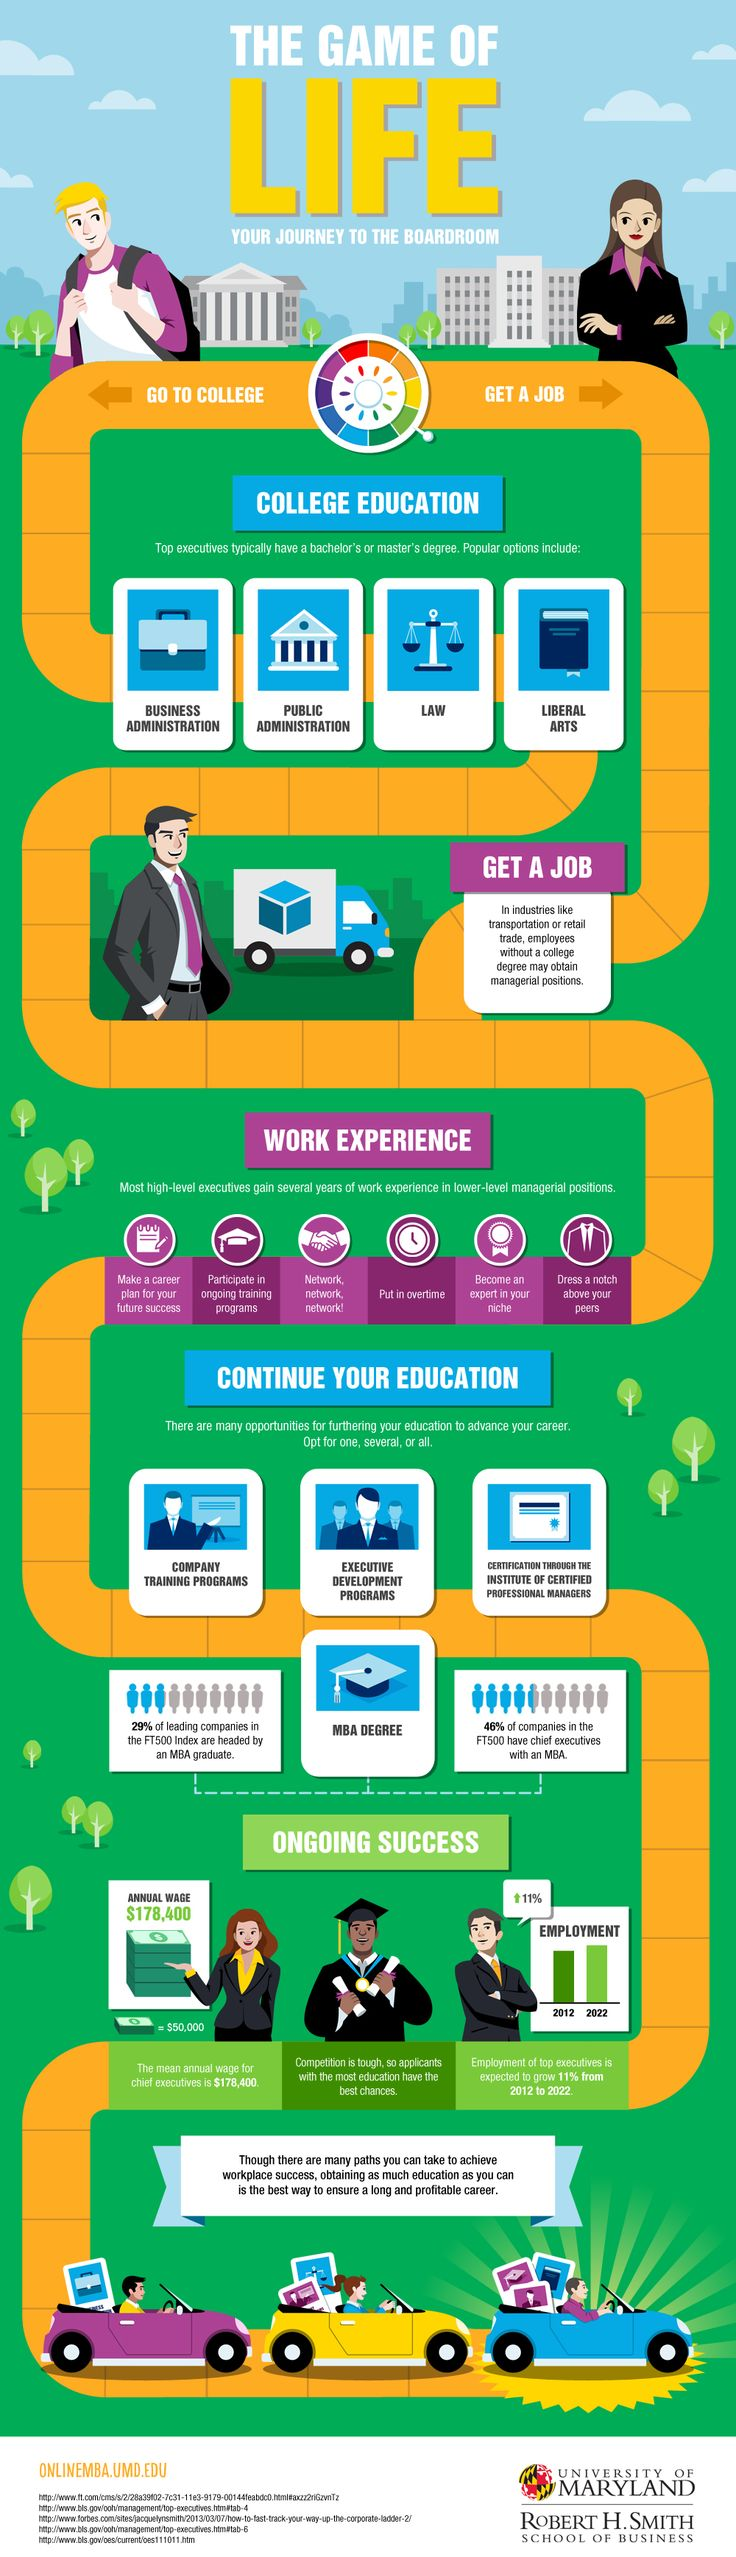 The Game of Life: Your Journey to the Boardroom | Online MBA UMD